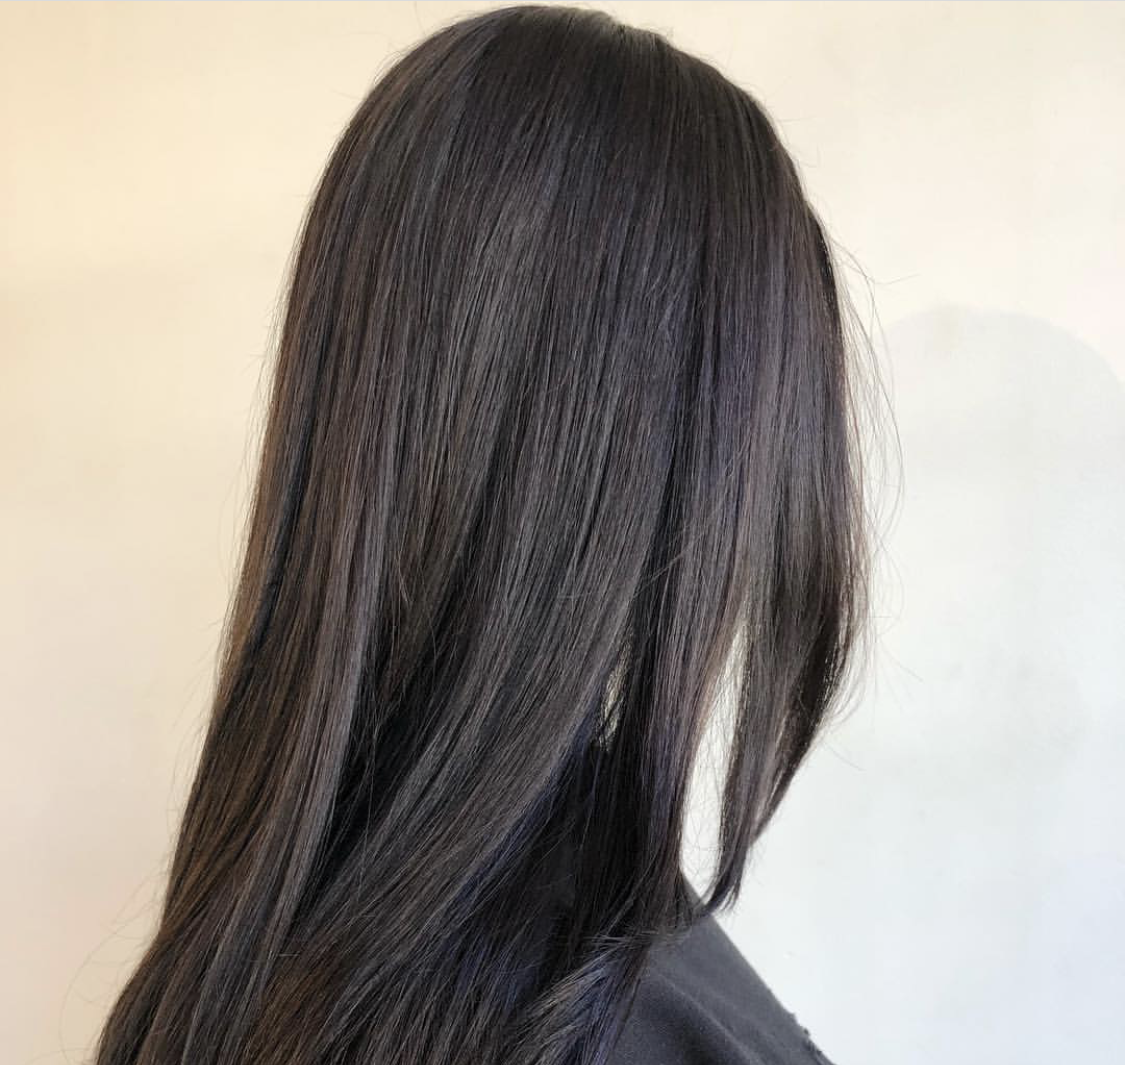 dark hair, brunette, sleek, smooth, silky, style, student work, natural hair, aveda, institute